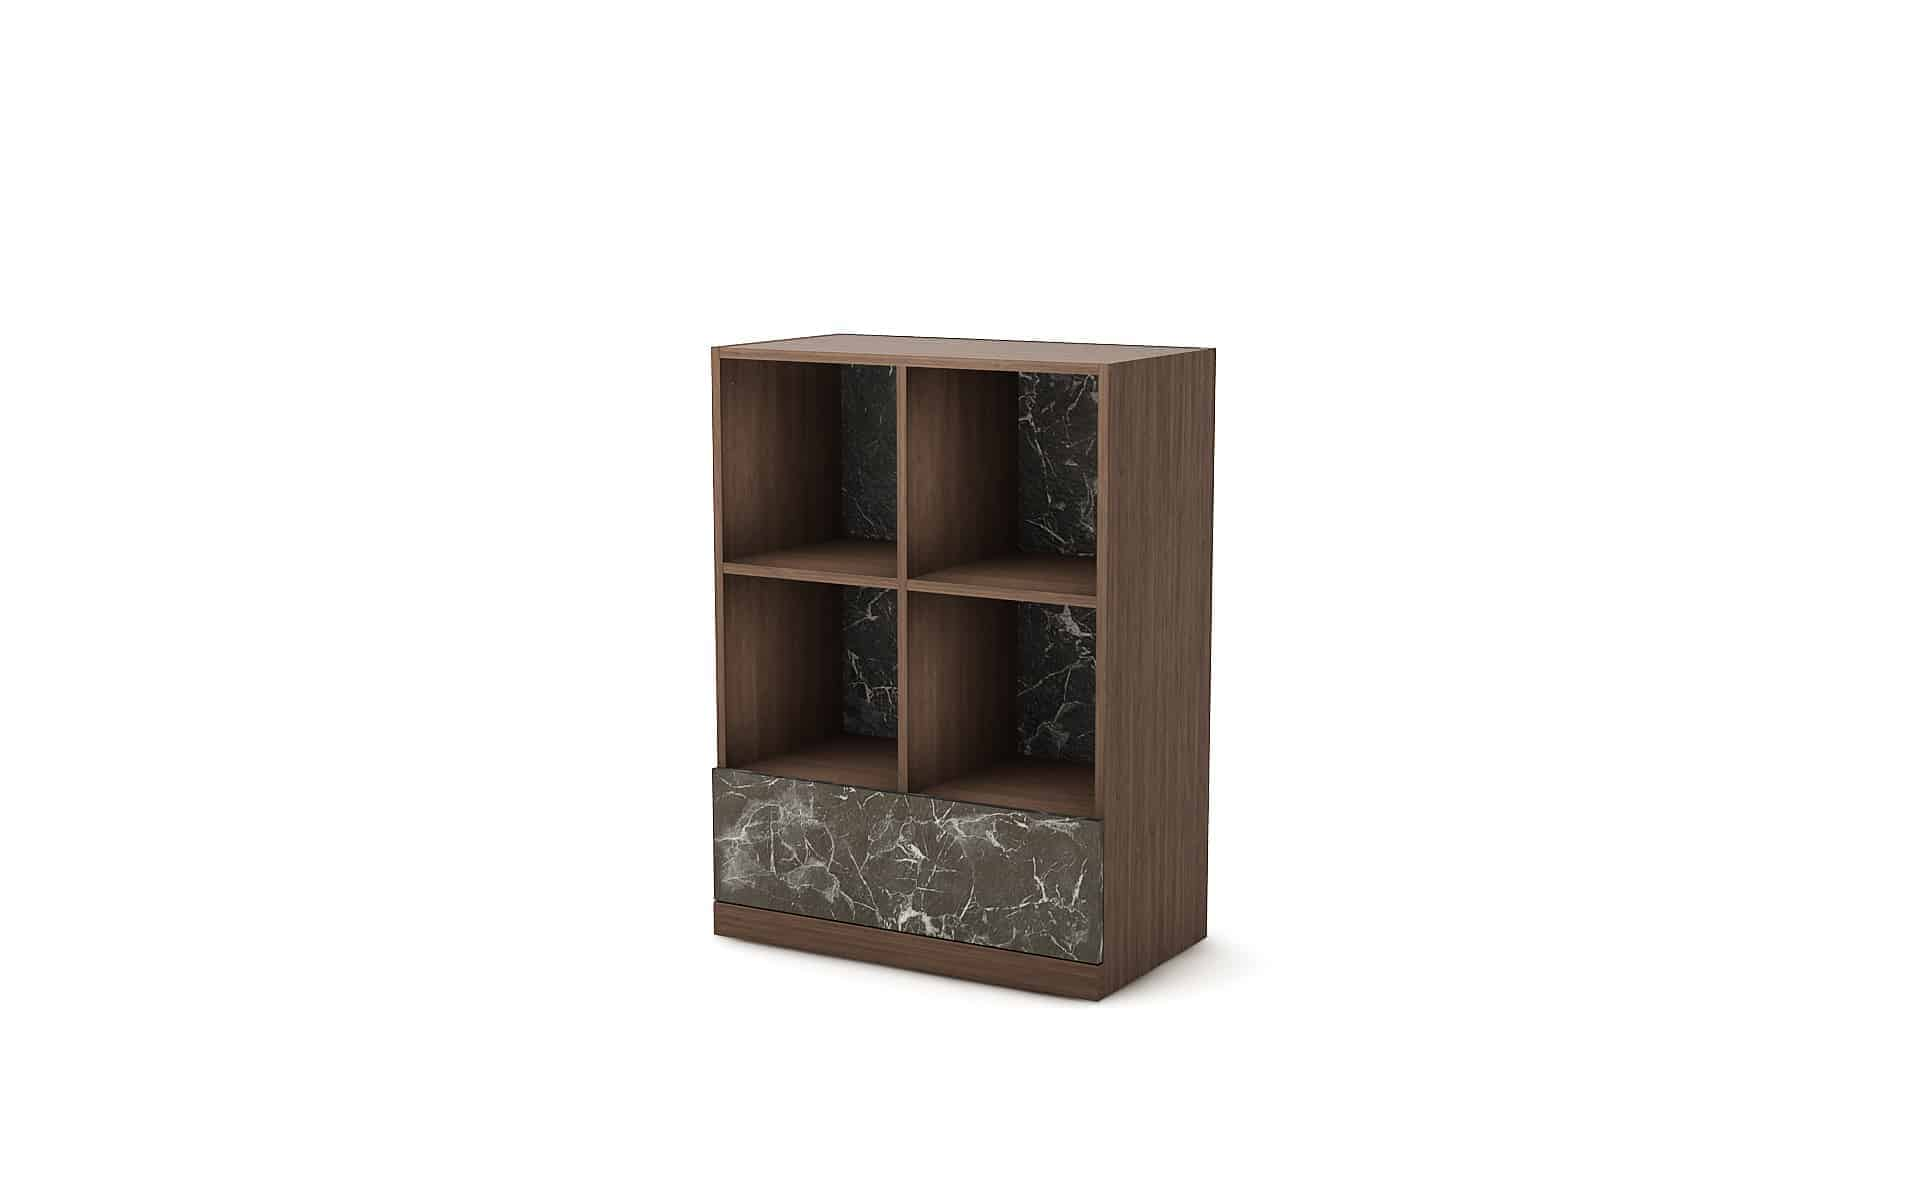 Shelving unit Zero image 1